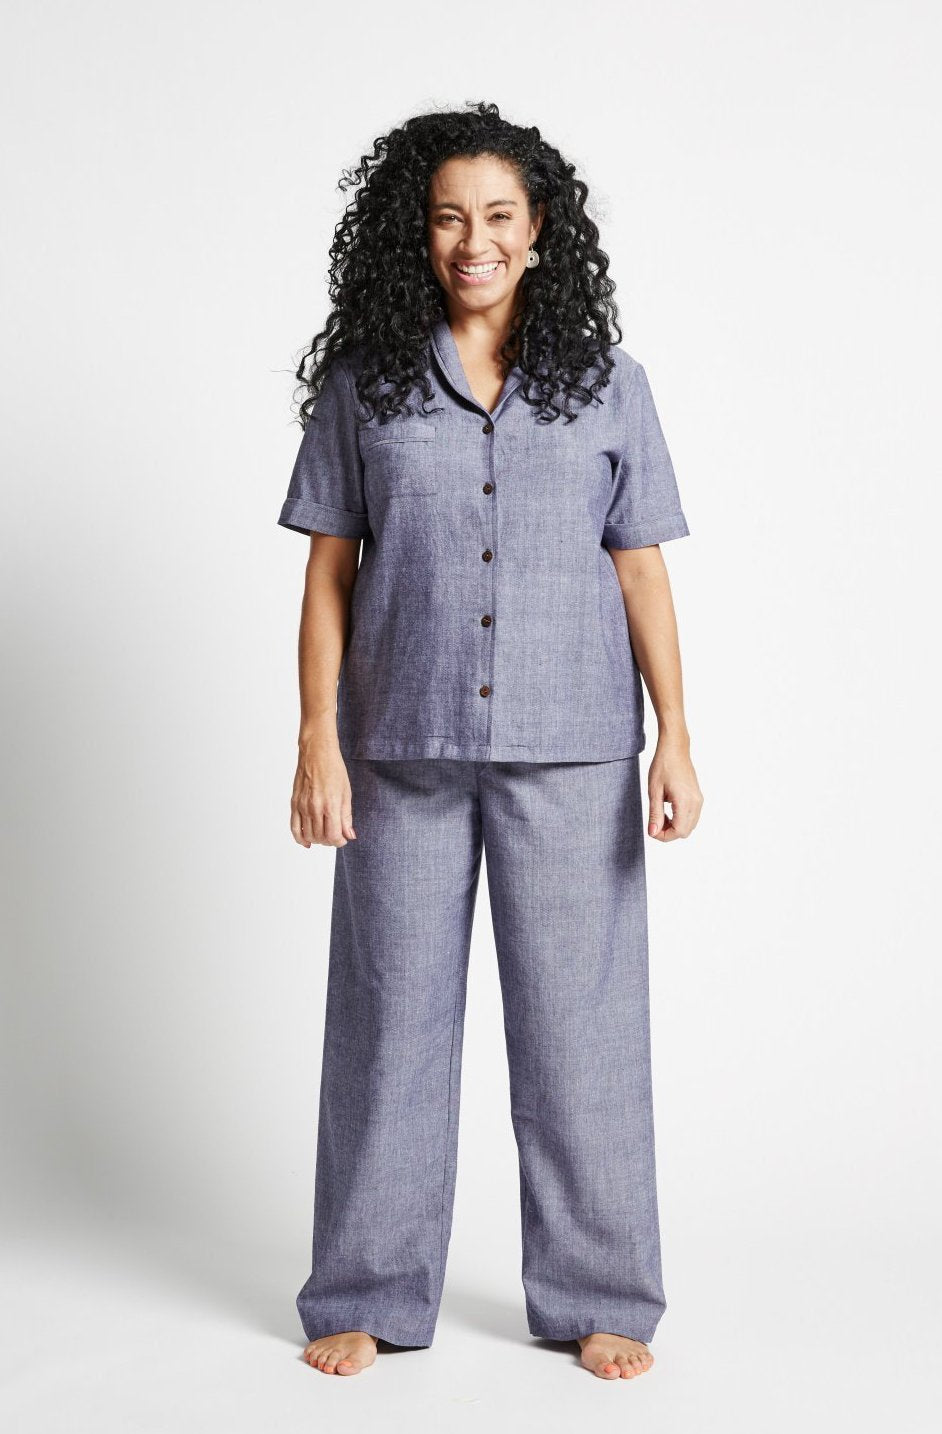 Navy Chambray - Woven Organic Cotton - Classic Top and Pants